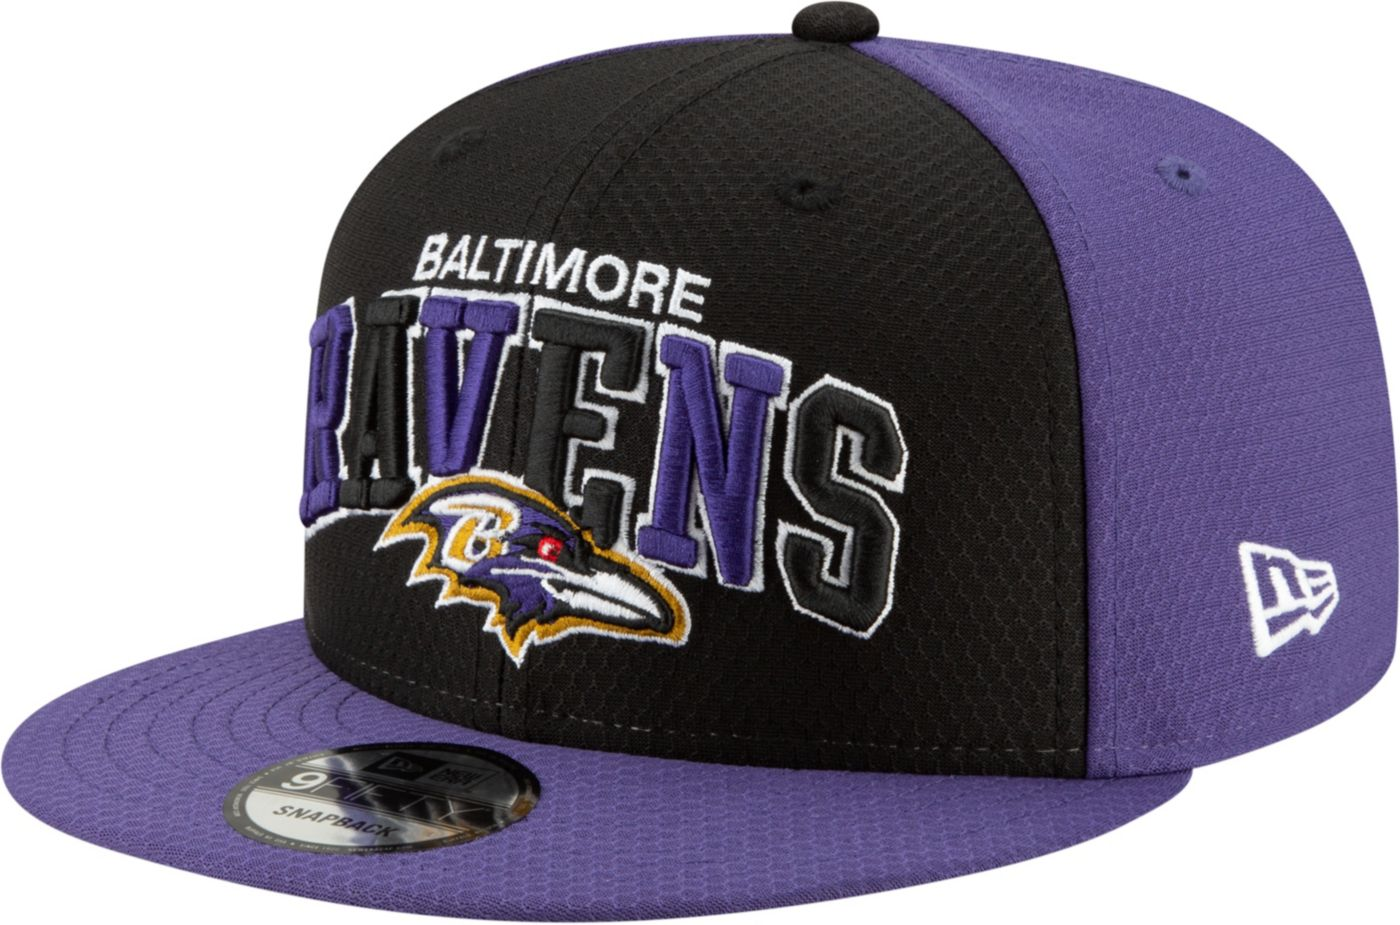 New Era Men's Baltimore Ravens Sideline Home 9Fifty Adjustable Hat